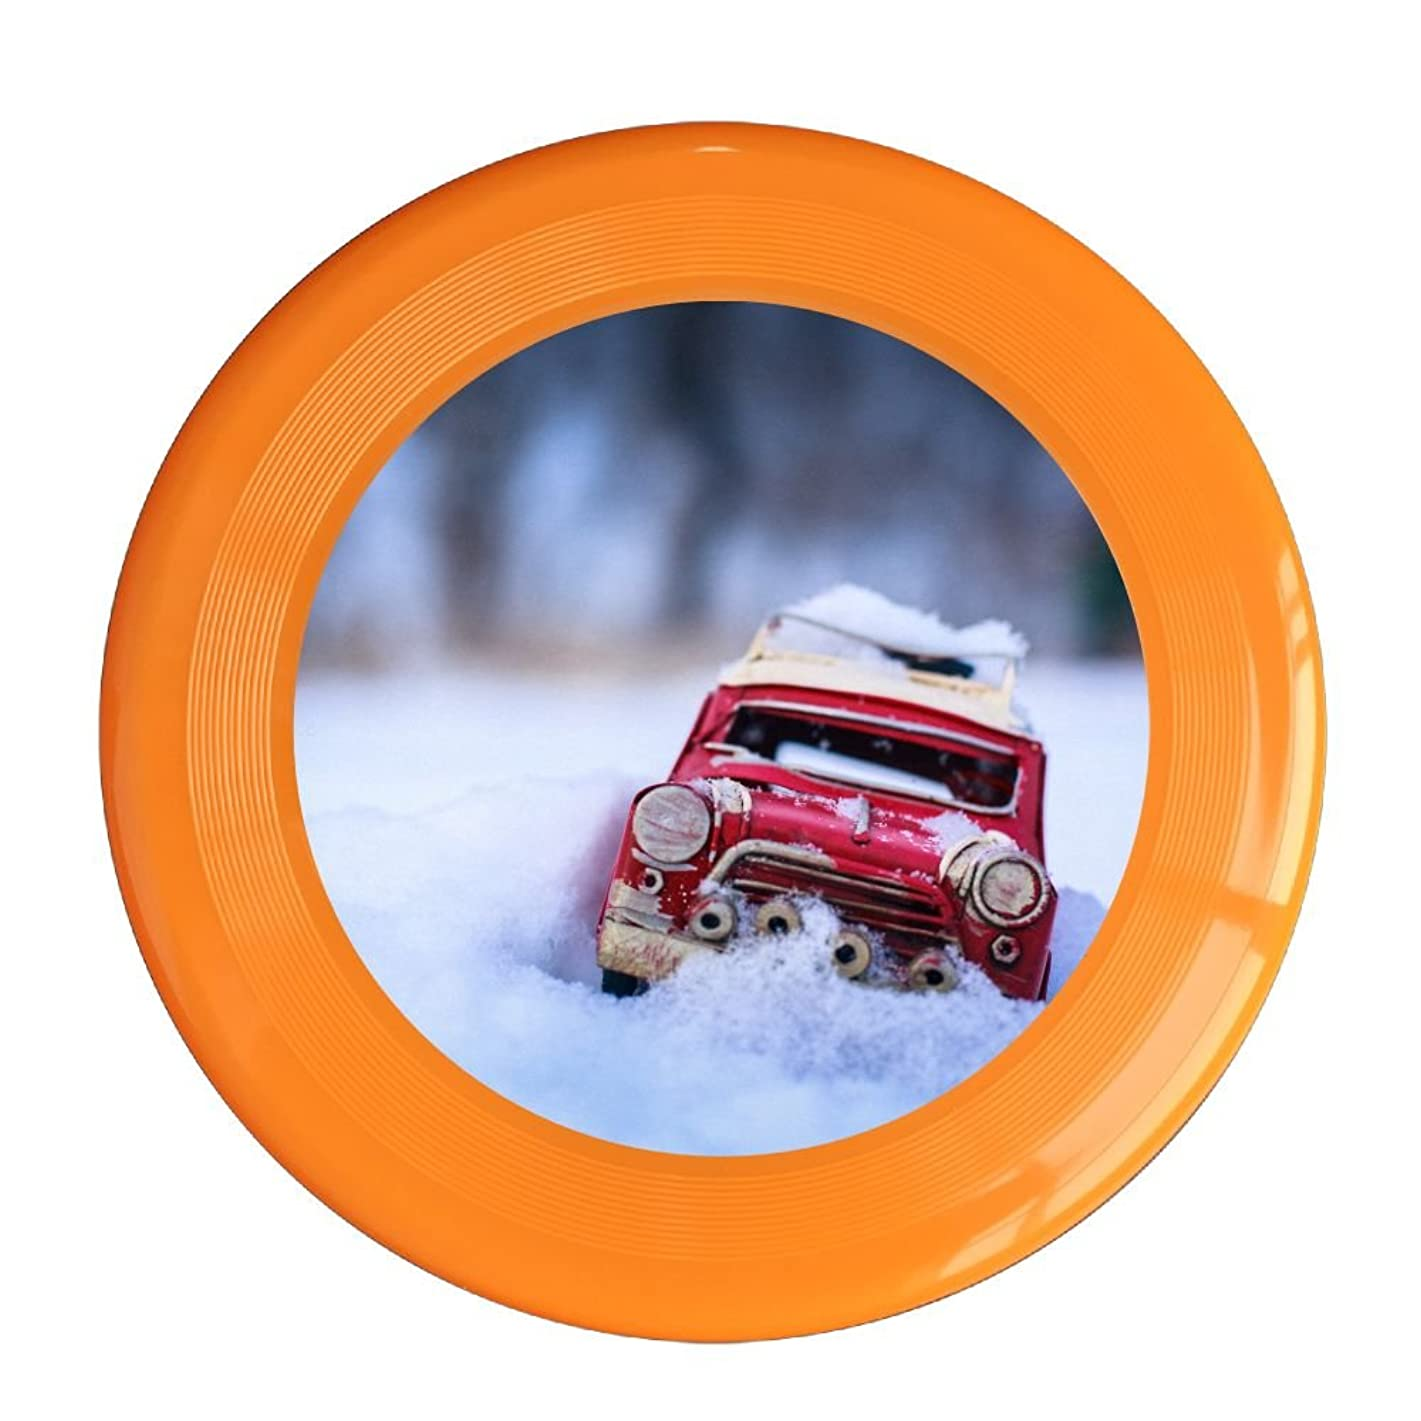 Skkoka Frisbee Red Toy Car In The Snow In Winter Frisbee Family Fun Group Game Variety Of Colors Durable Frisbee Yellow